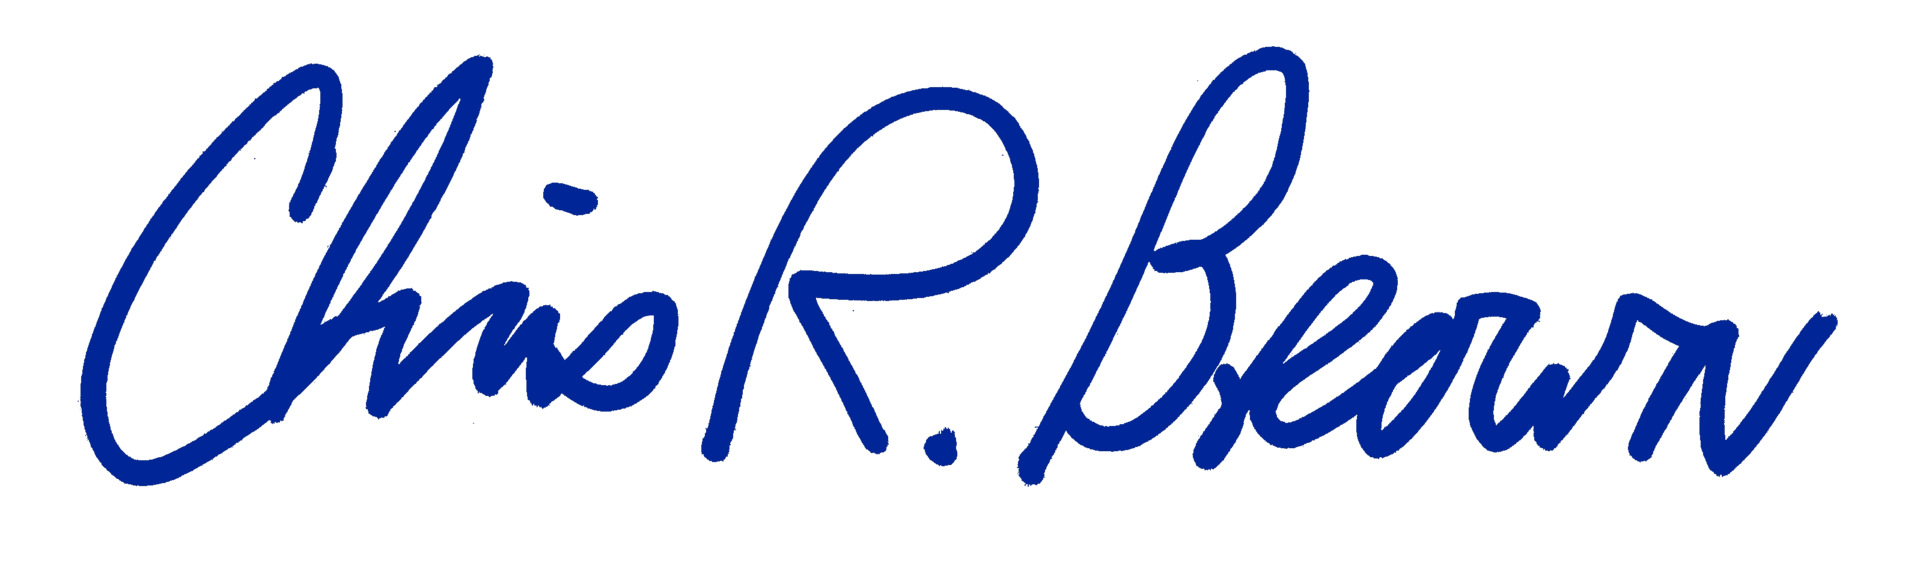 Chris Brown signature